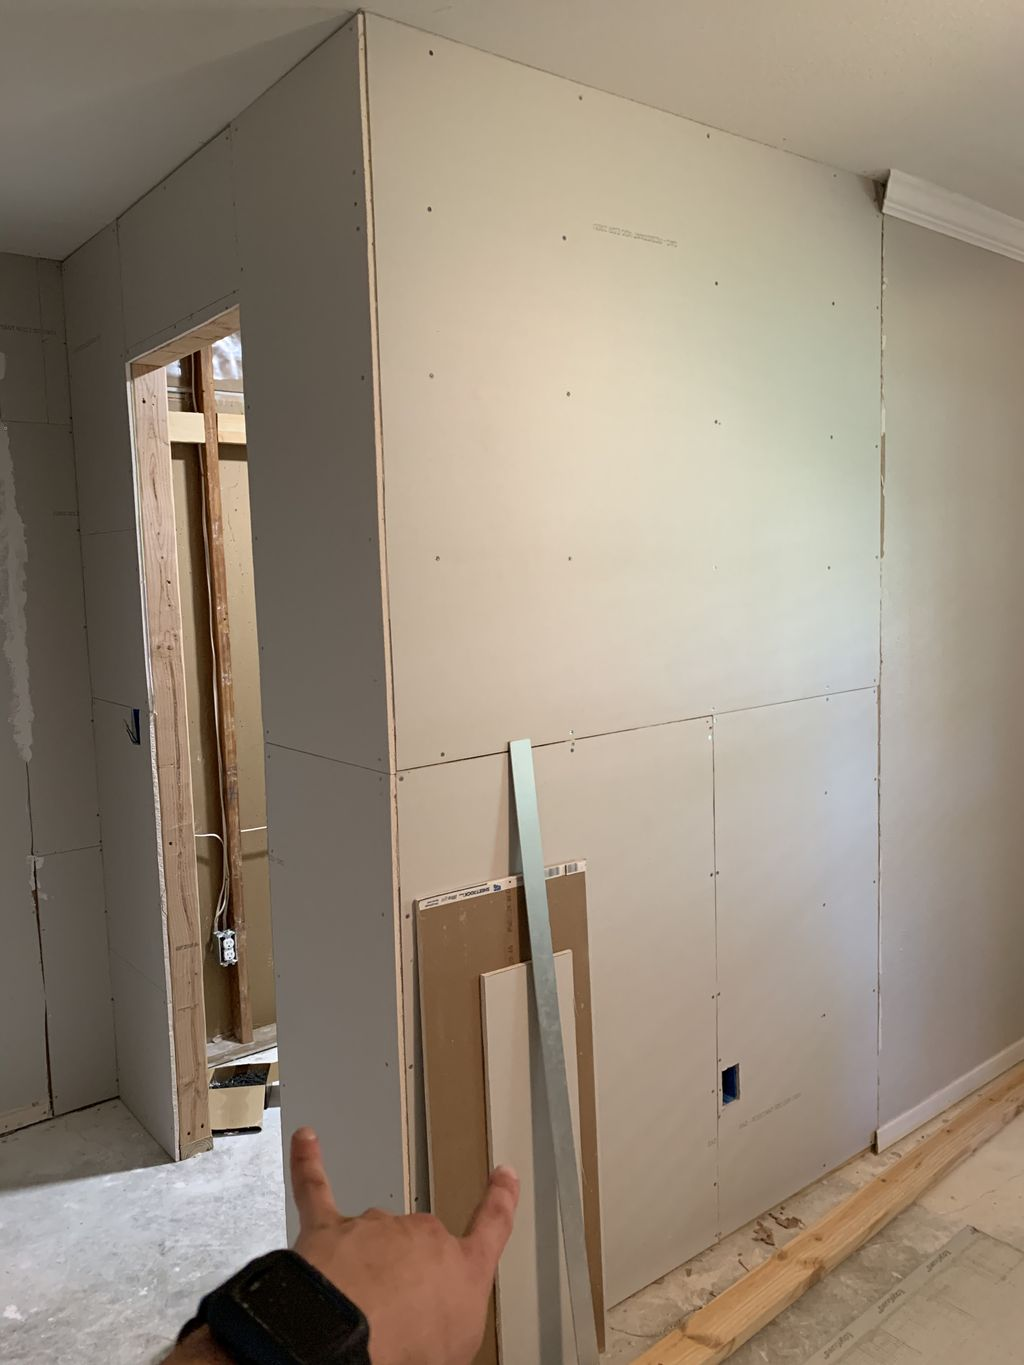 Drywall finish with crows foot texture